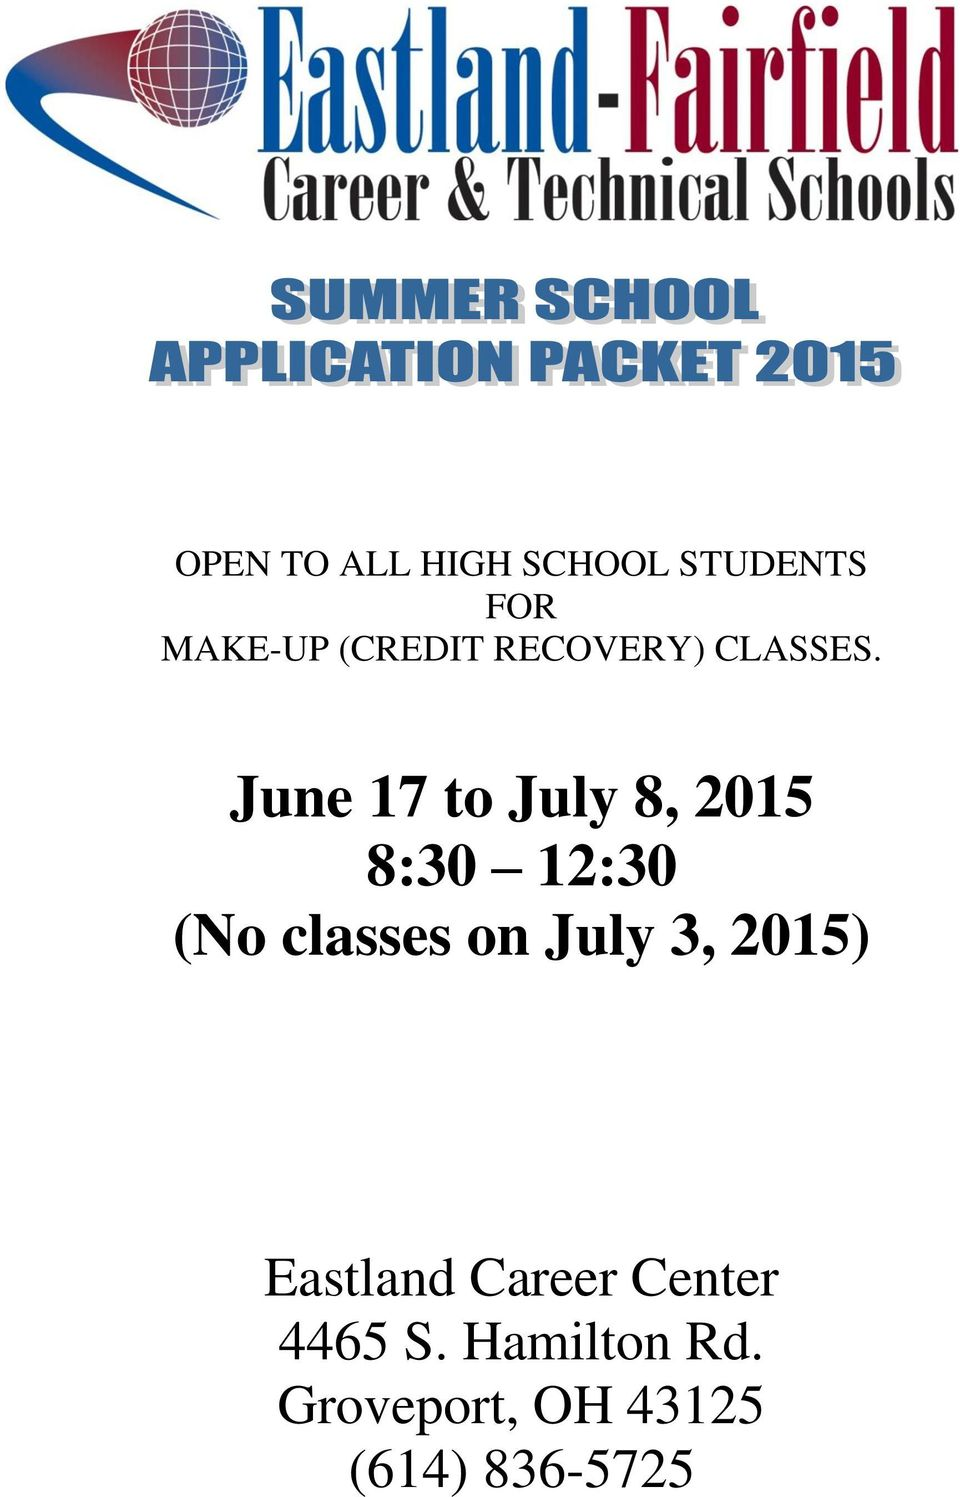 June 17 to July 8, 2015 8:30 12:30 (No classes on